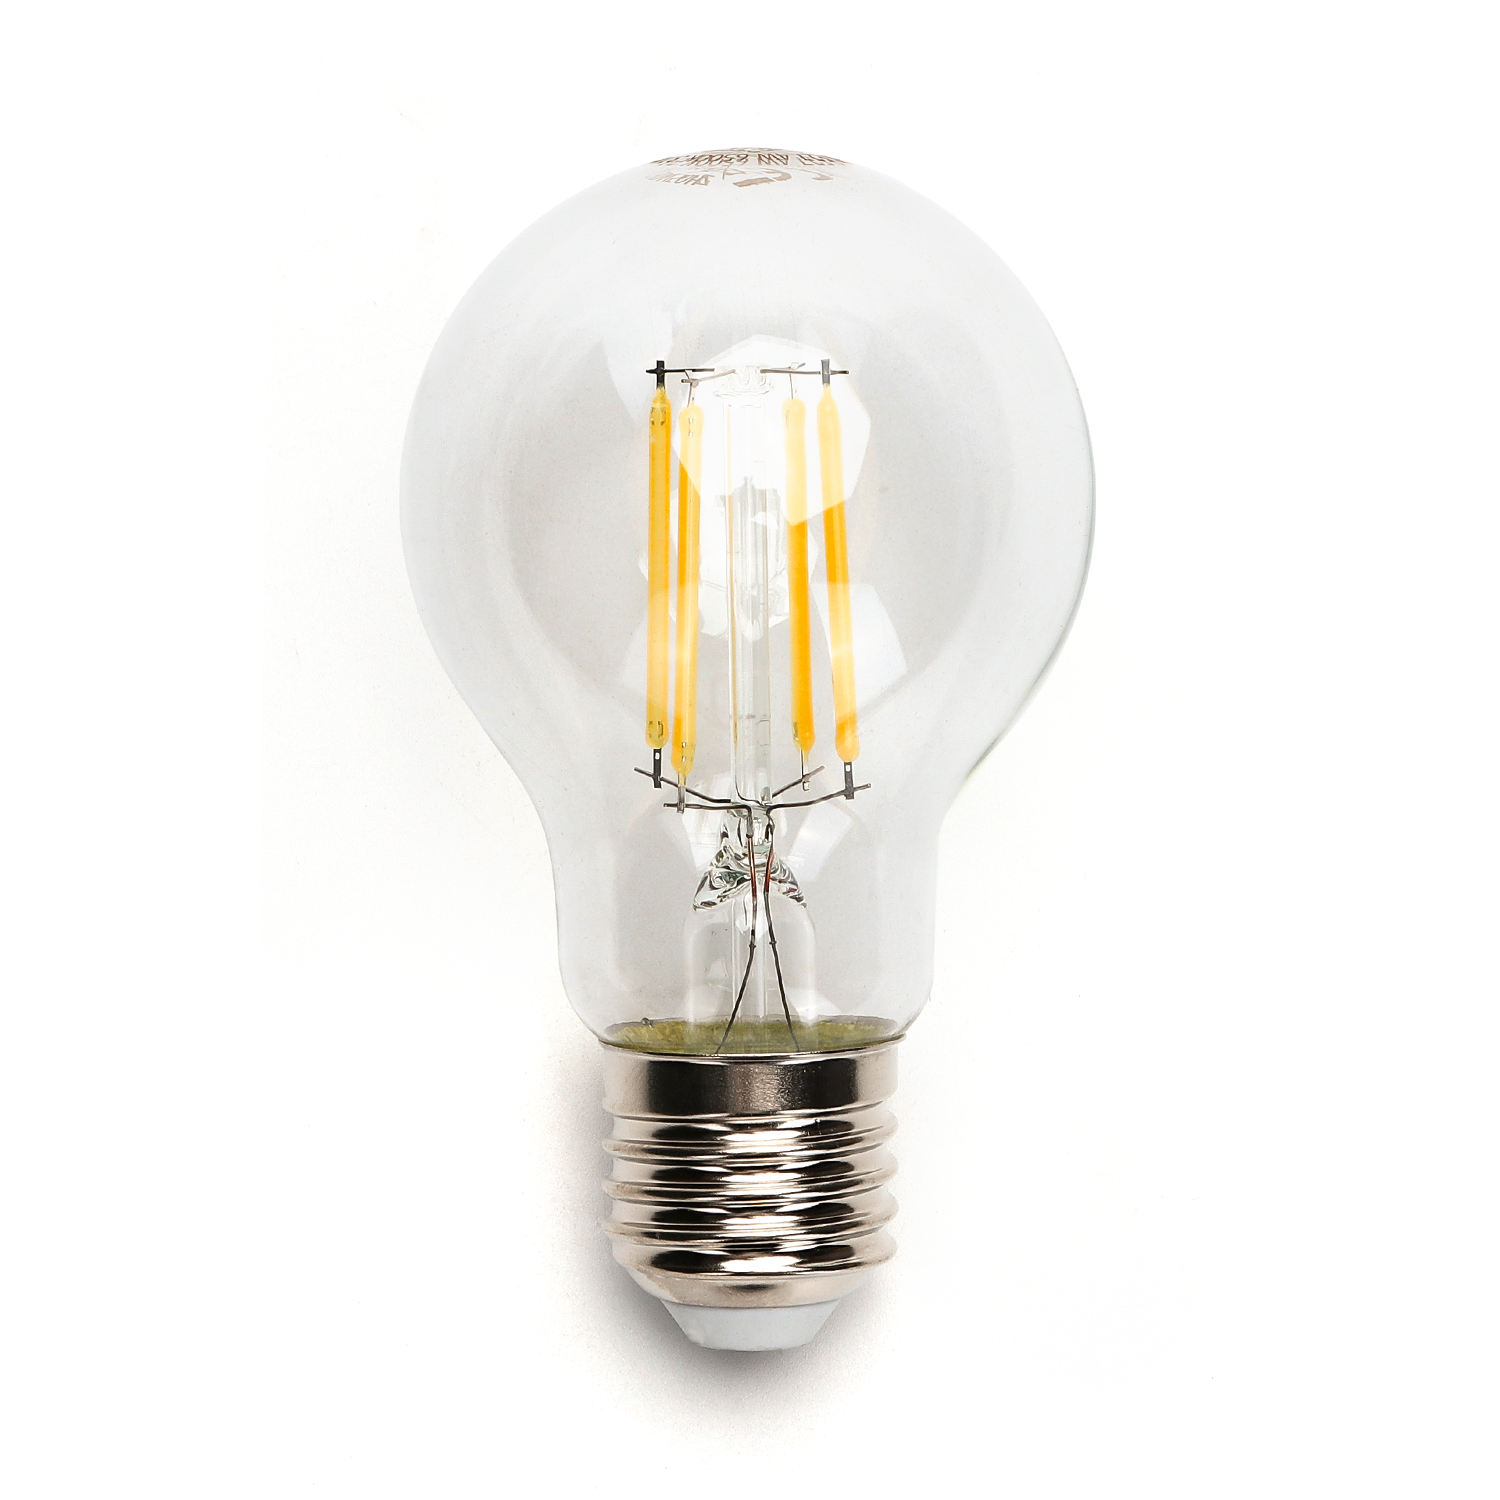 LED Filament peer lamp 4 Watt grote fitting E27 A60 2700K Warm wit - lamp